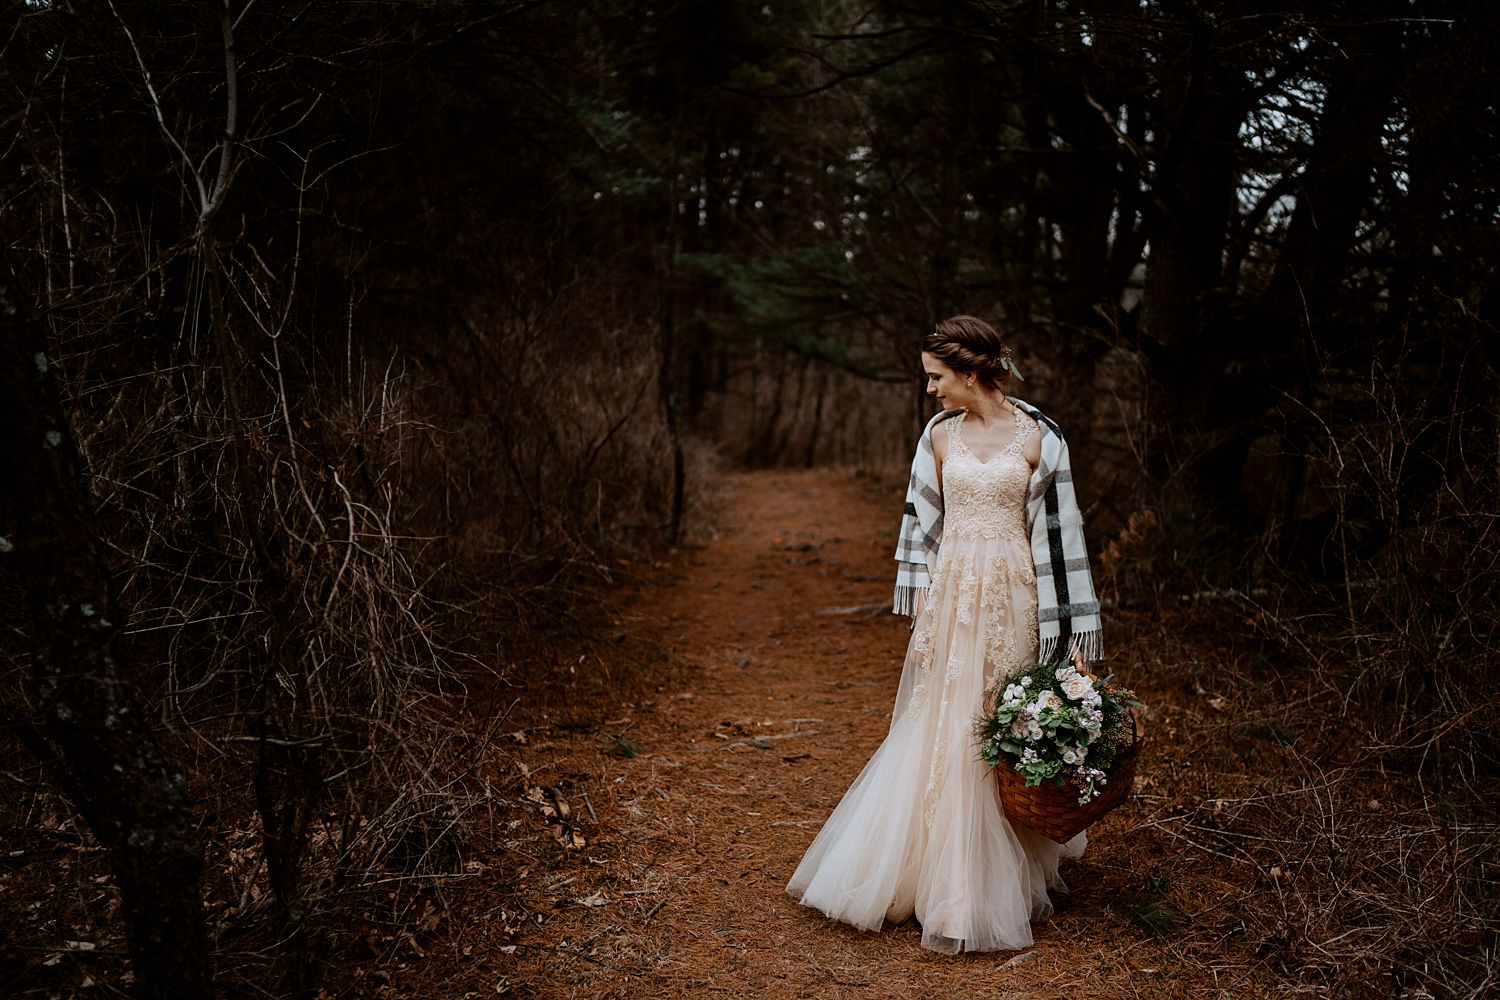 woodsey-elopement-_055.jpg